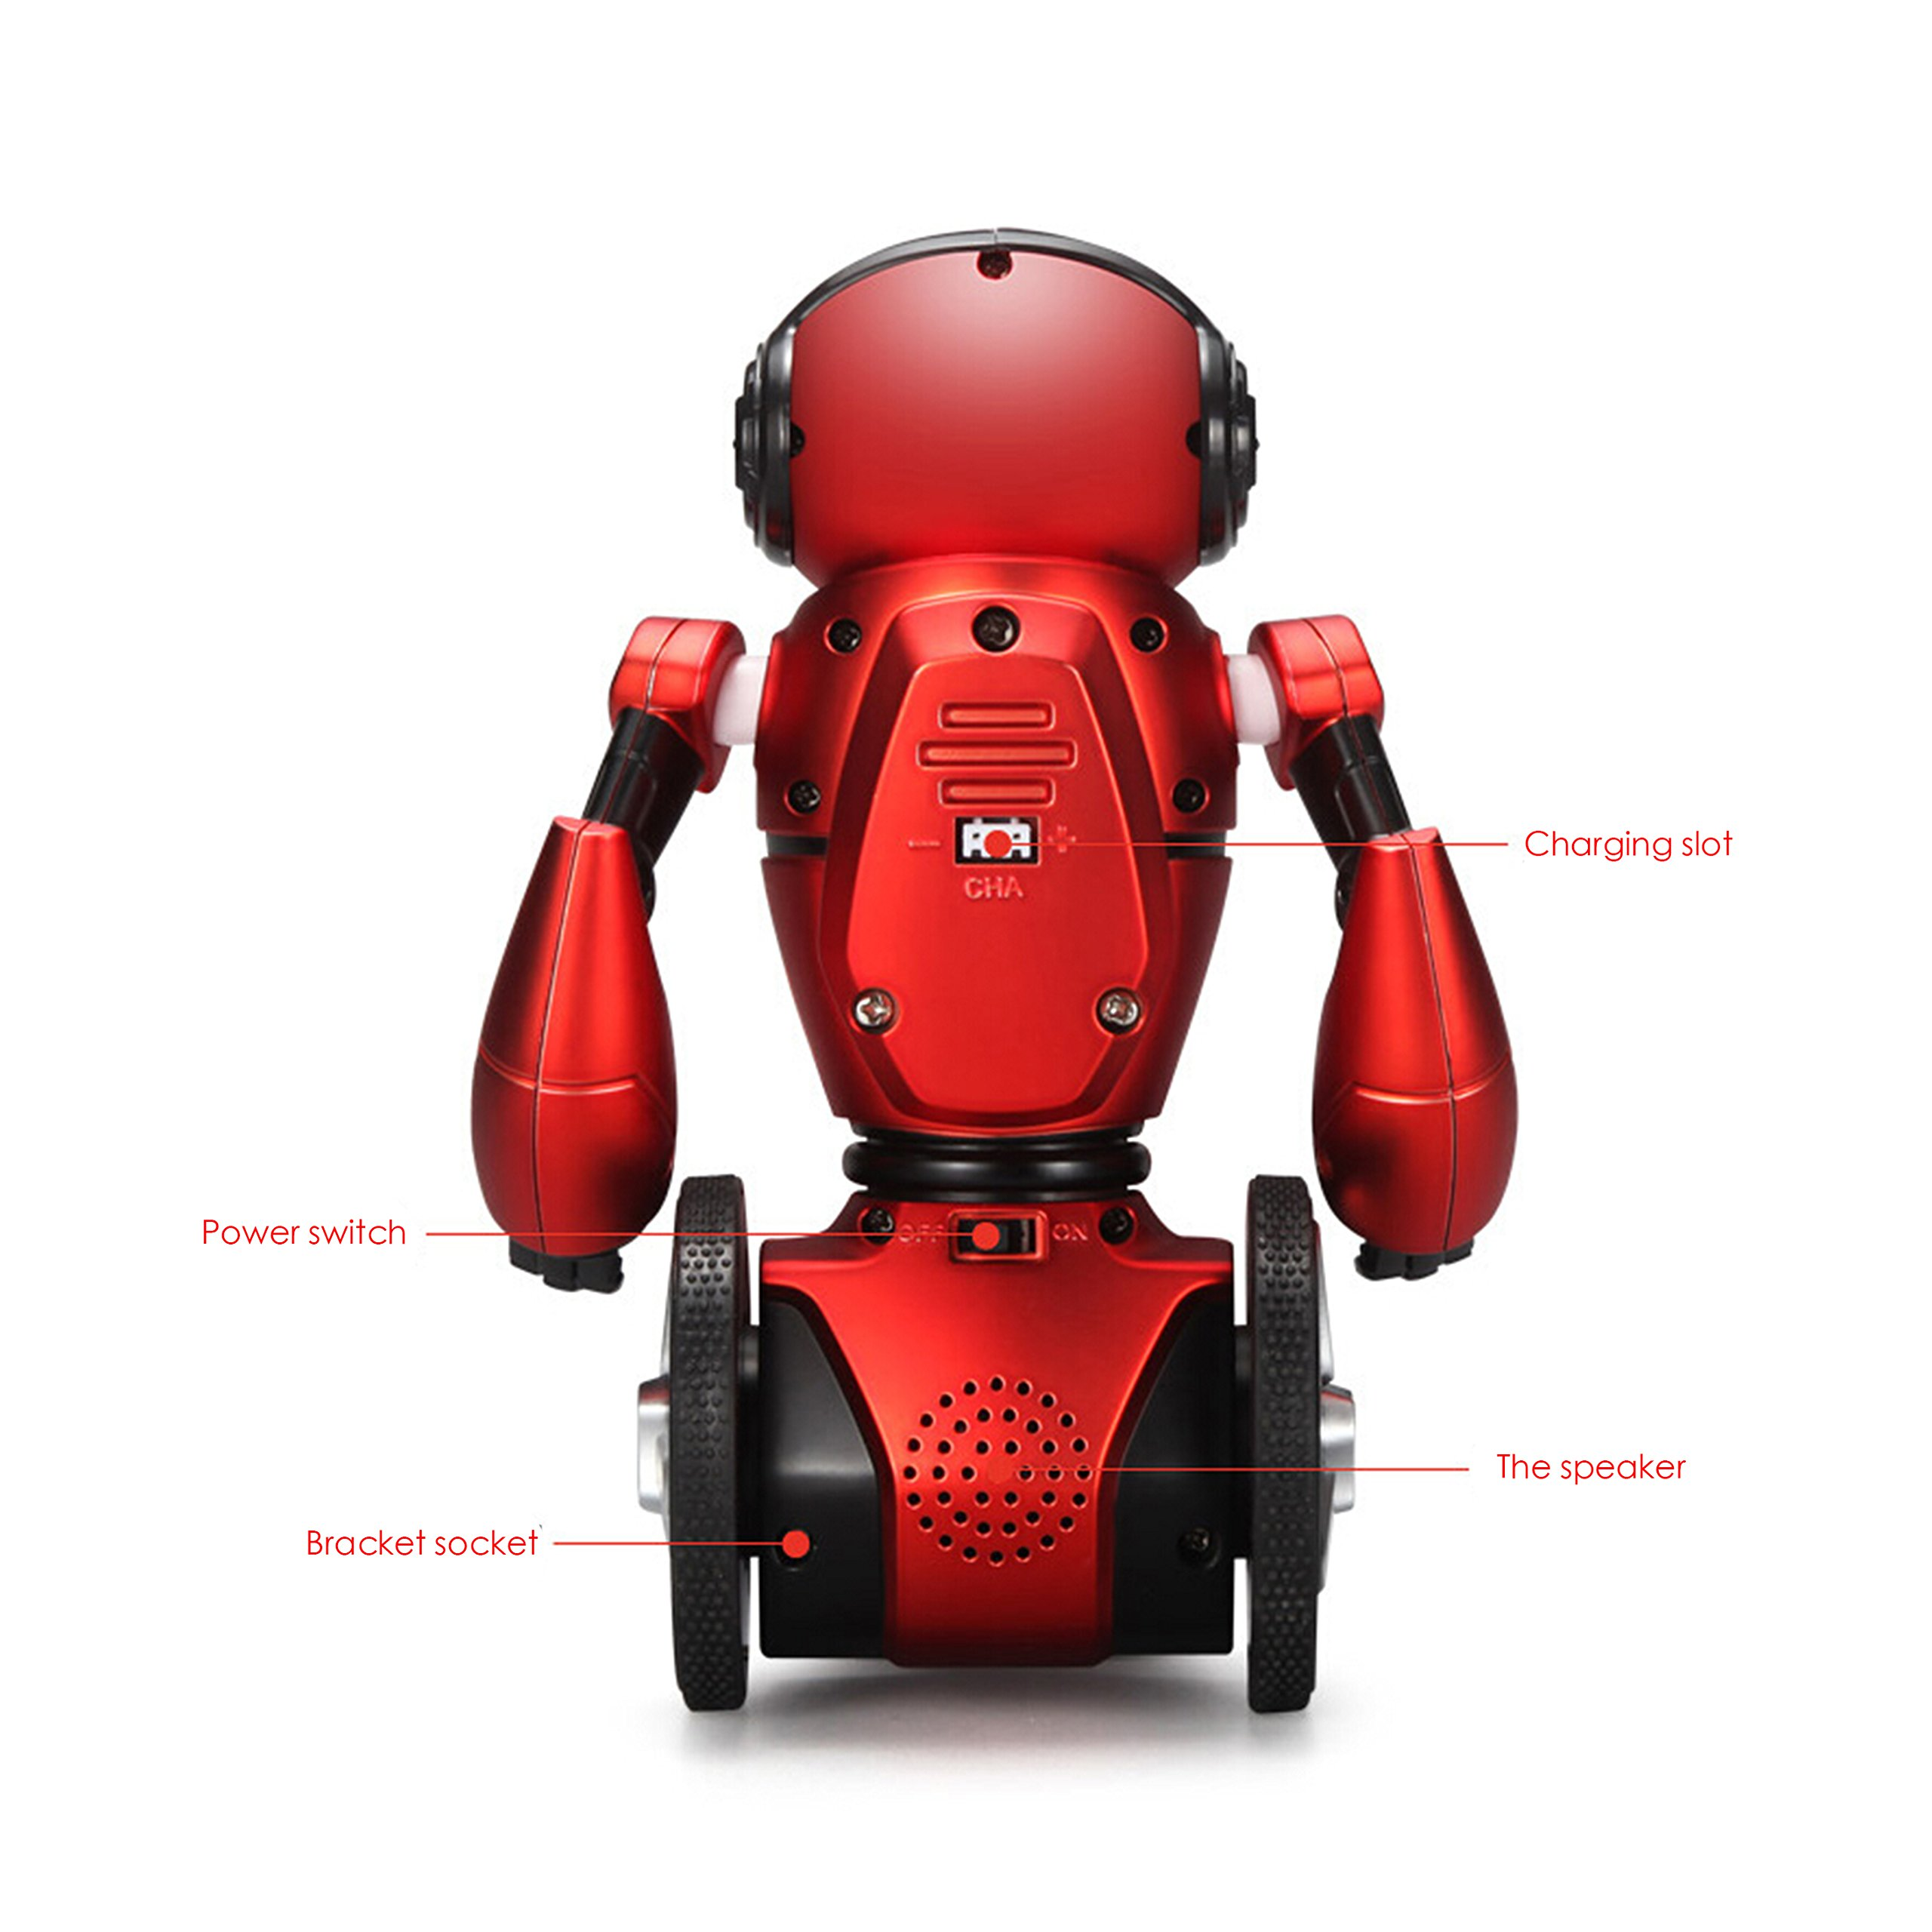 WLToys Intelligent Two Wheels Balance RC Robot Toy with Dance Music Avoidance Human-computer Interaction Mode for Children Kids as a Gift *Colors May Vary. by WLtoys (Image #6)